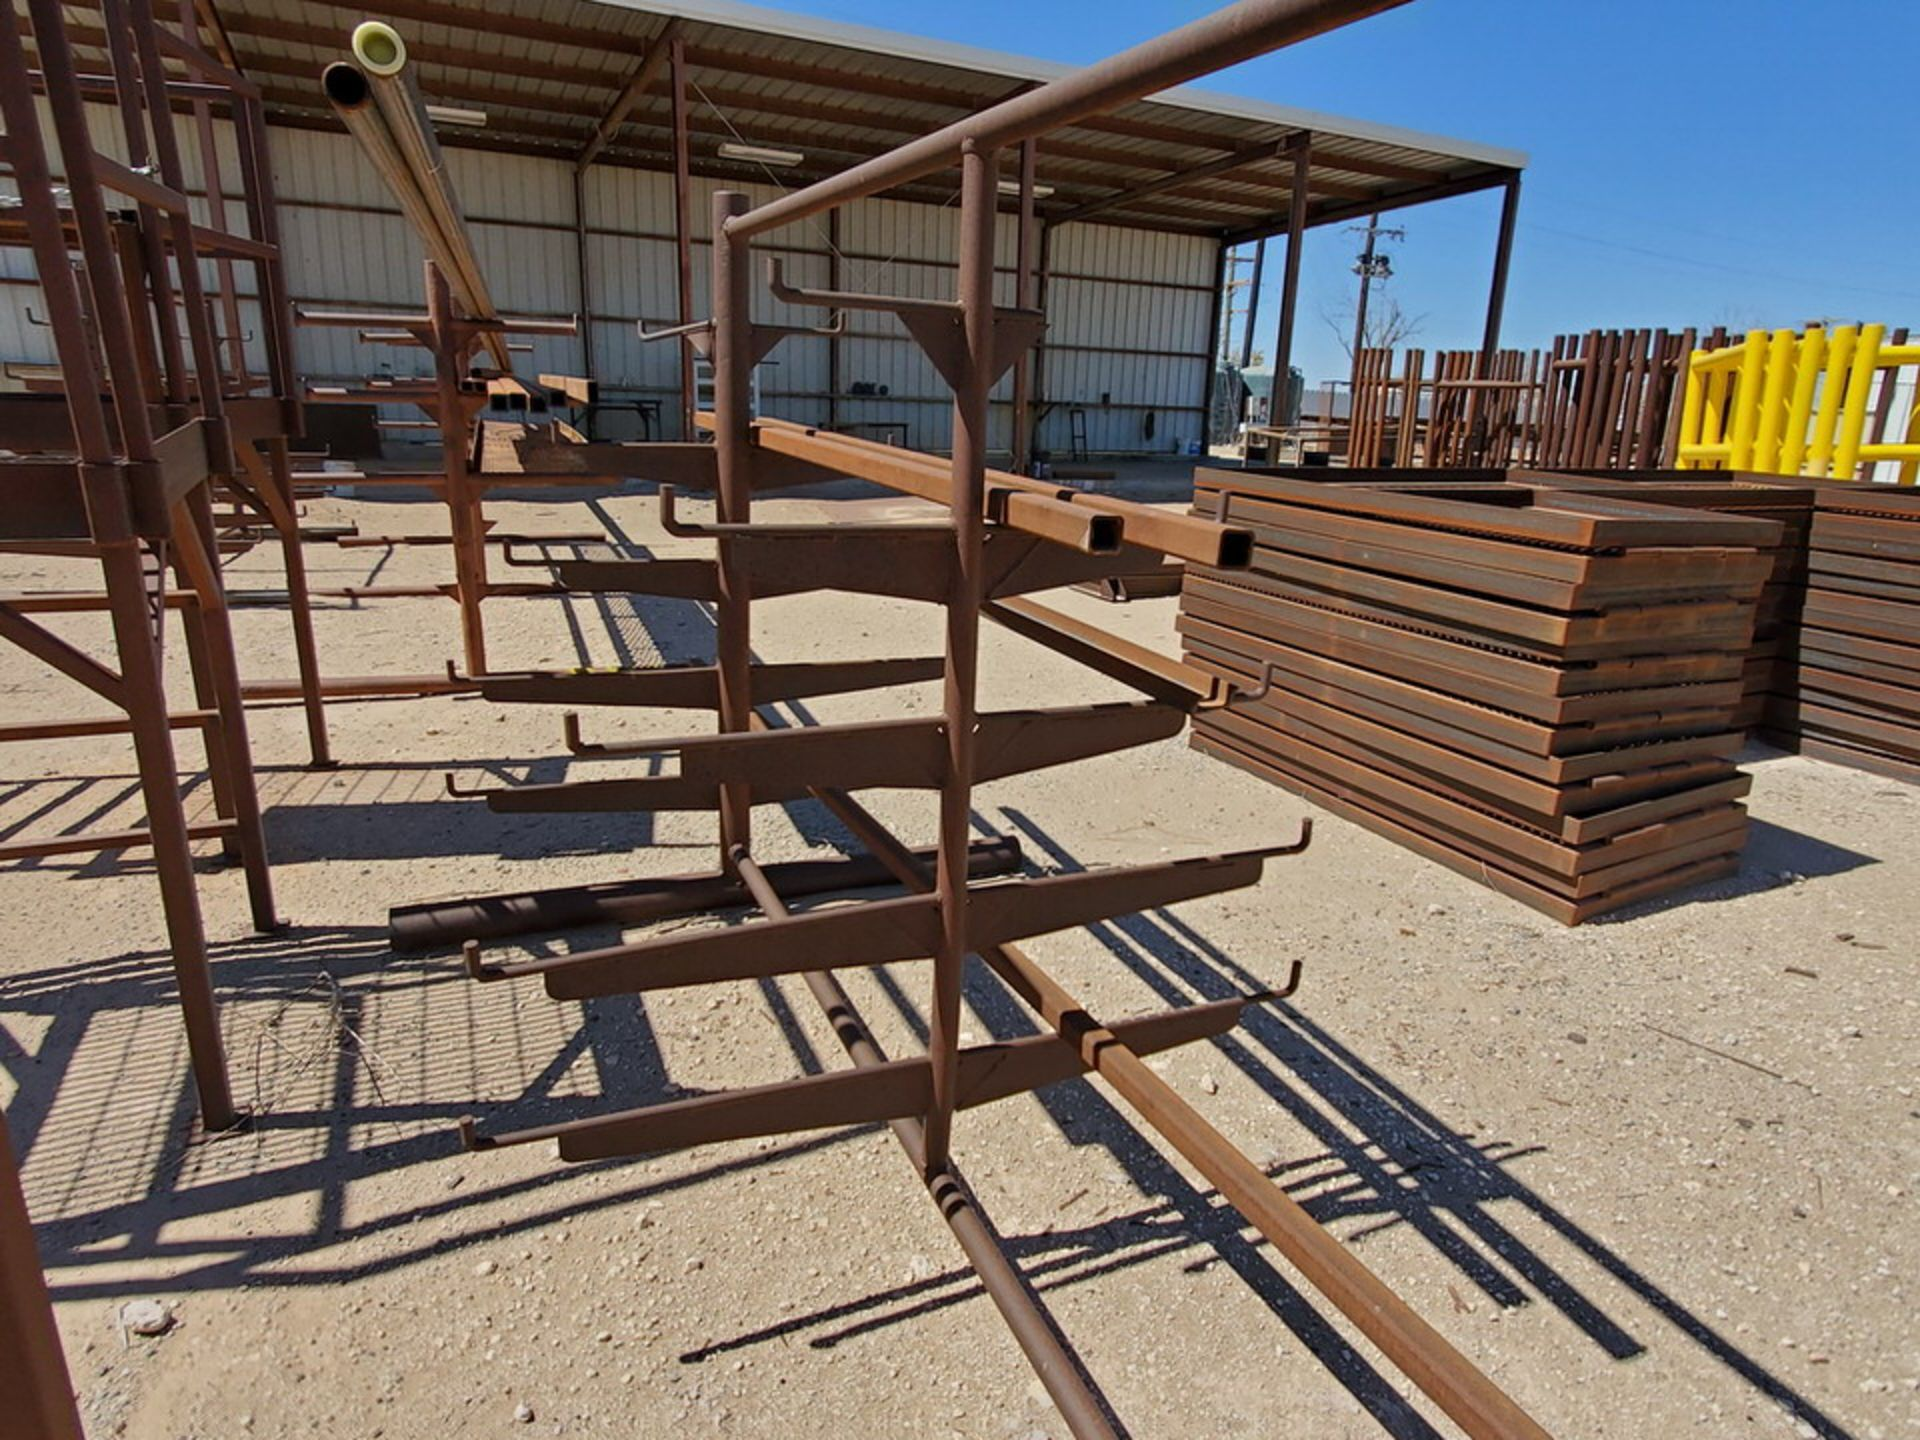 """(3) 3-Post Doublesided Cantilever Racks (2) 10' x 6' x 6'6"""", (1) 17' x 7' x 6'6"""" - Image 8 of 17"""